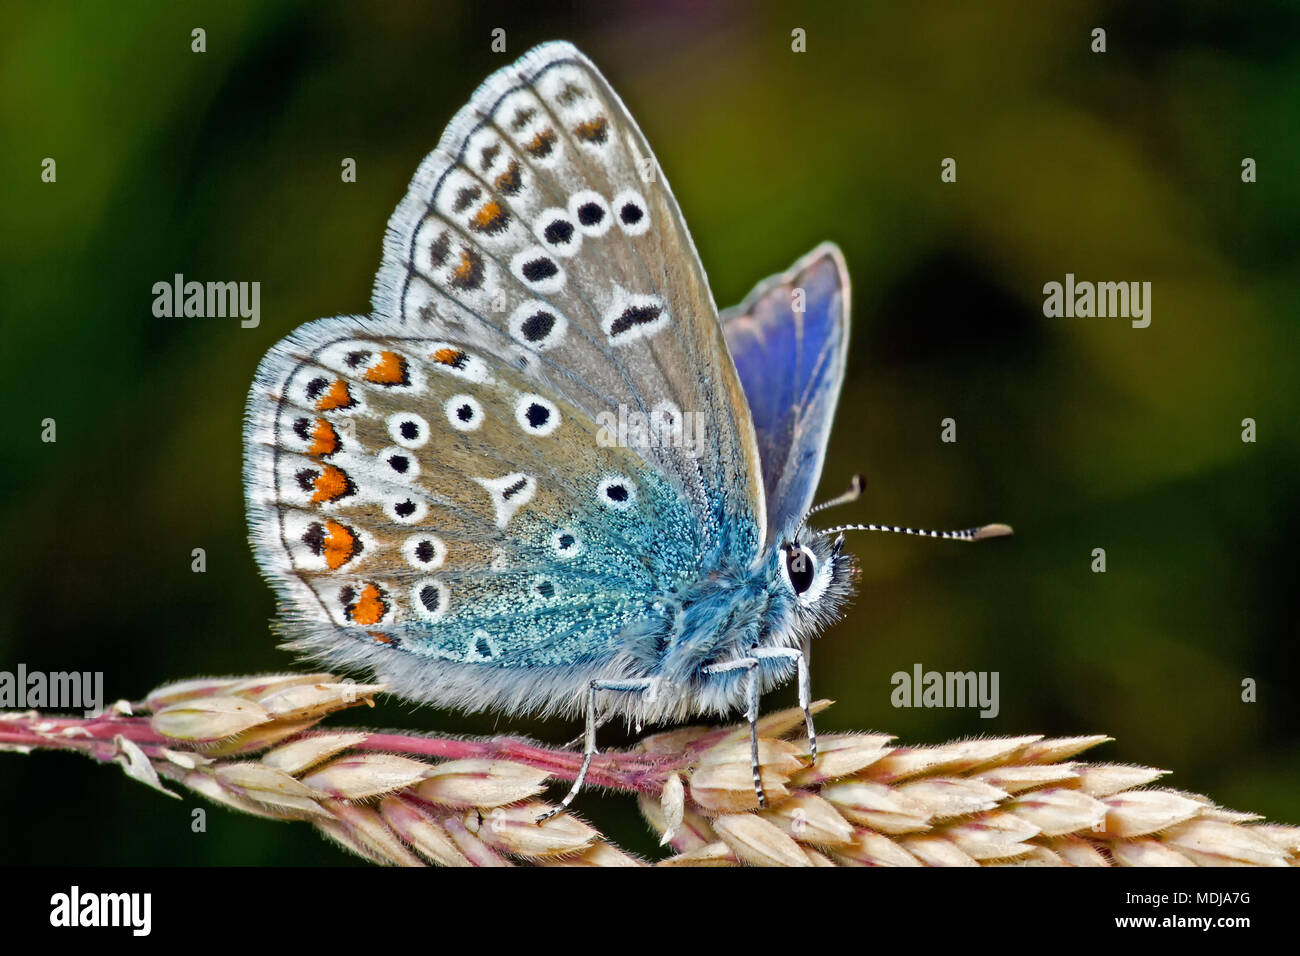 A Common Blue Butterfly, widespread throughout the British Isles but suffering population decline due to loss of habitat, rests in summer sunshine. - Stock Image